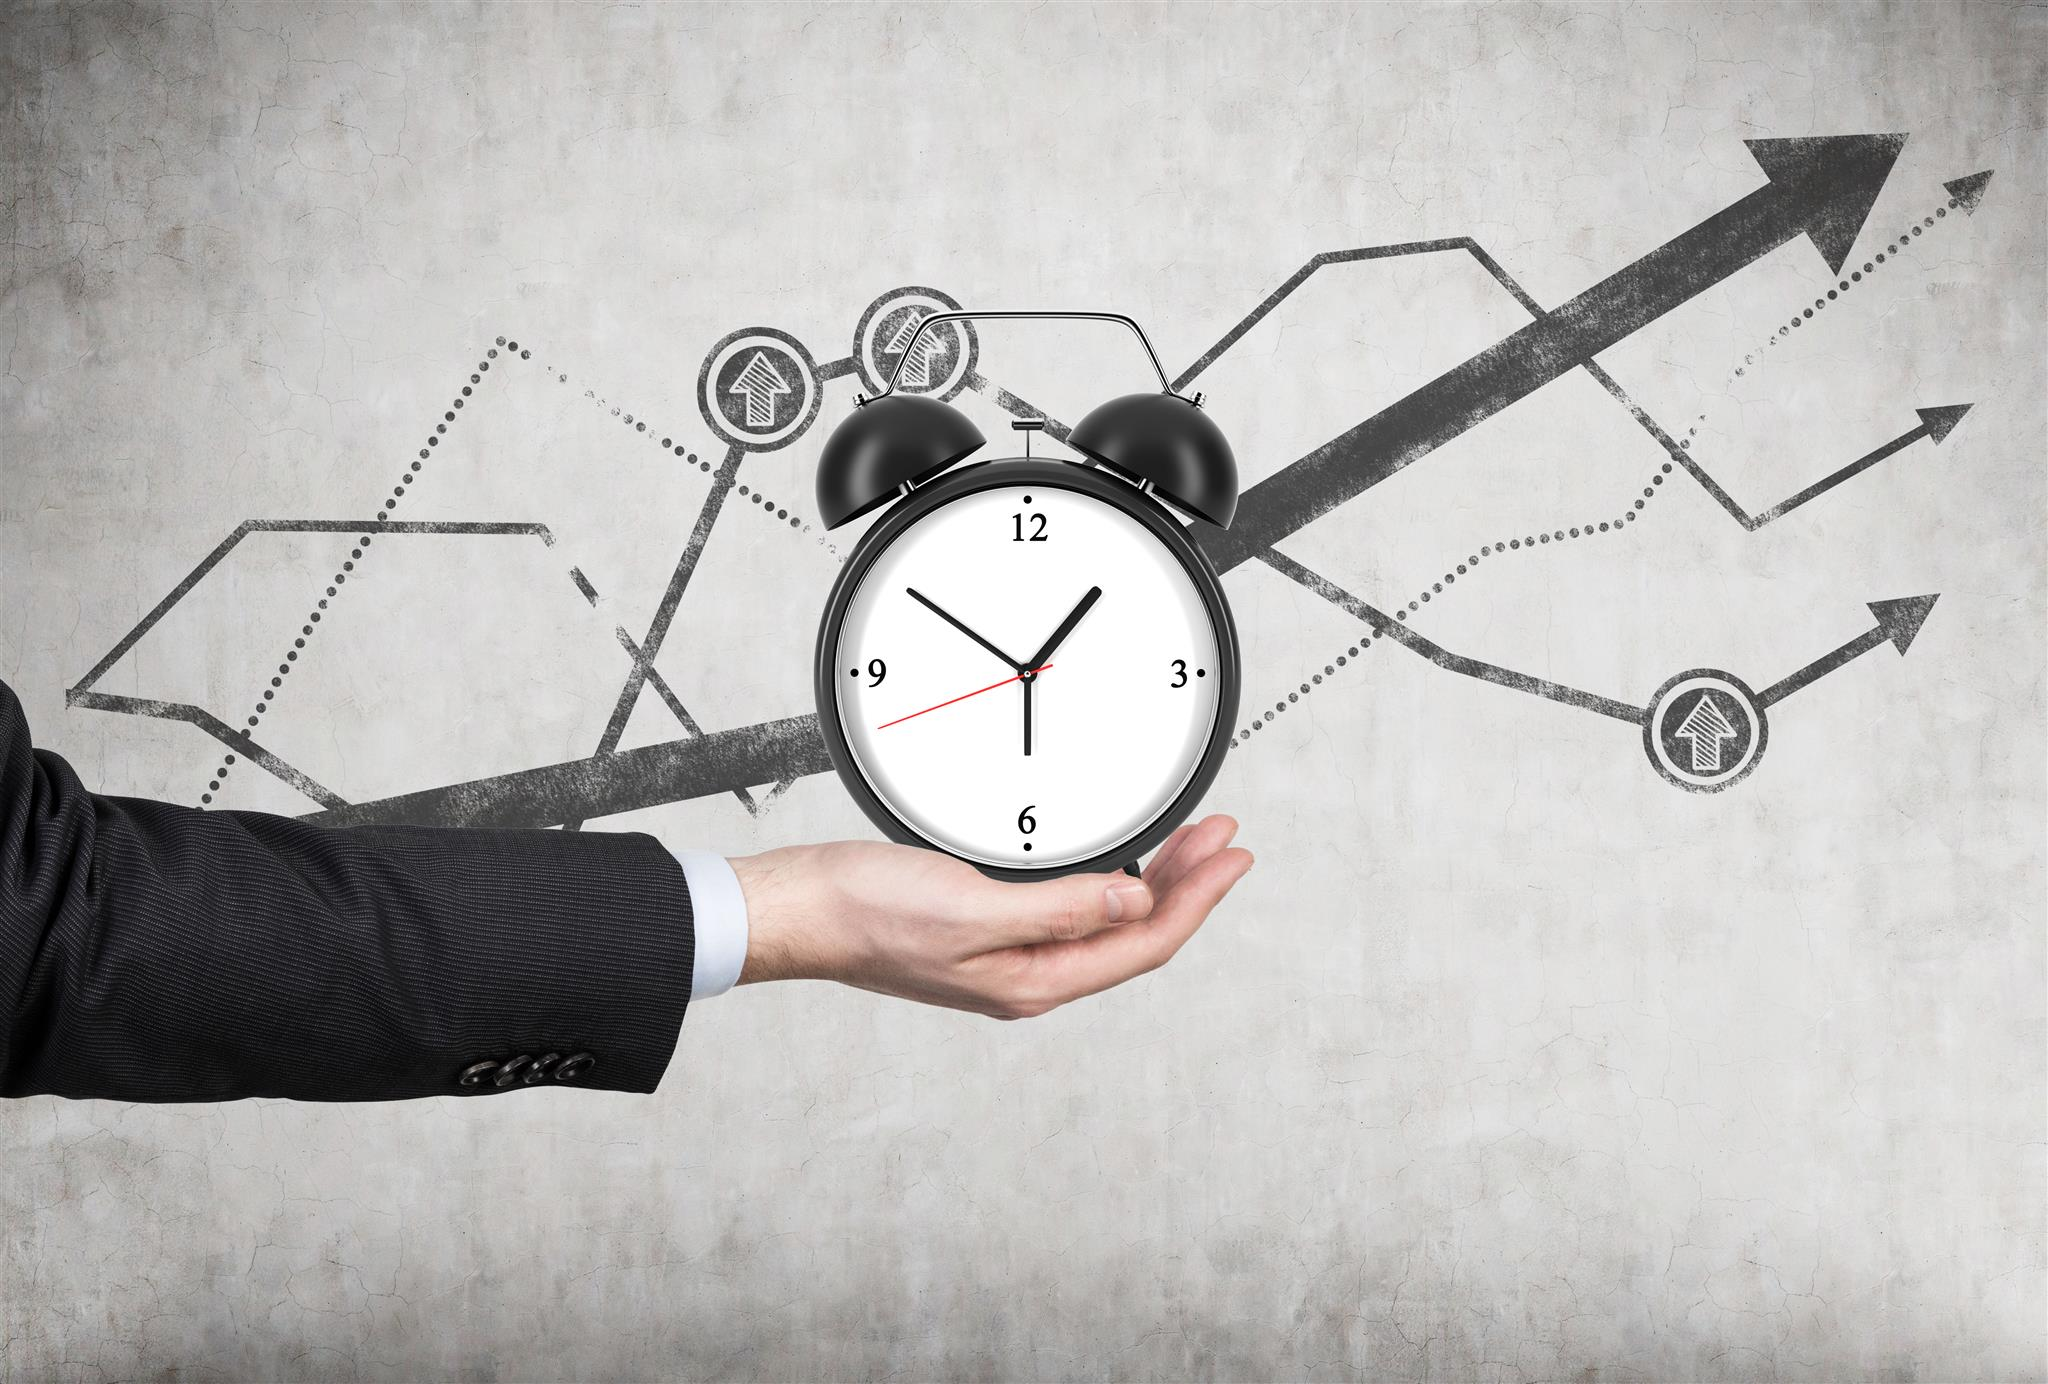 Benefits of the Time Tracking Software